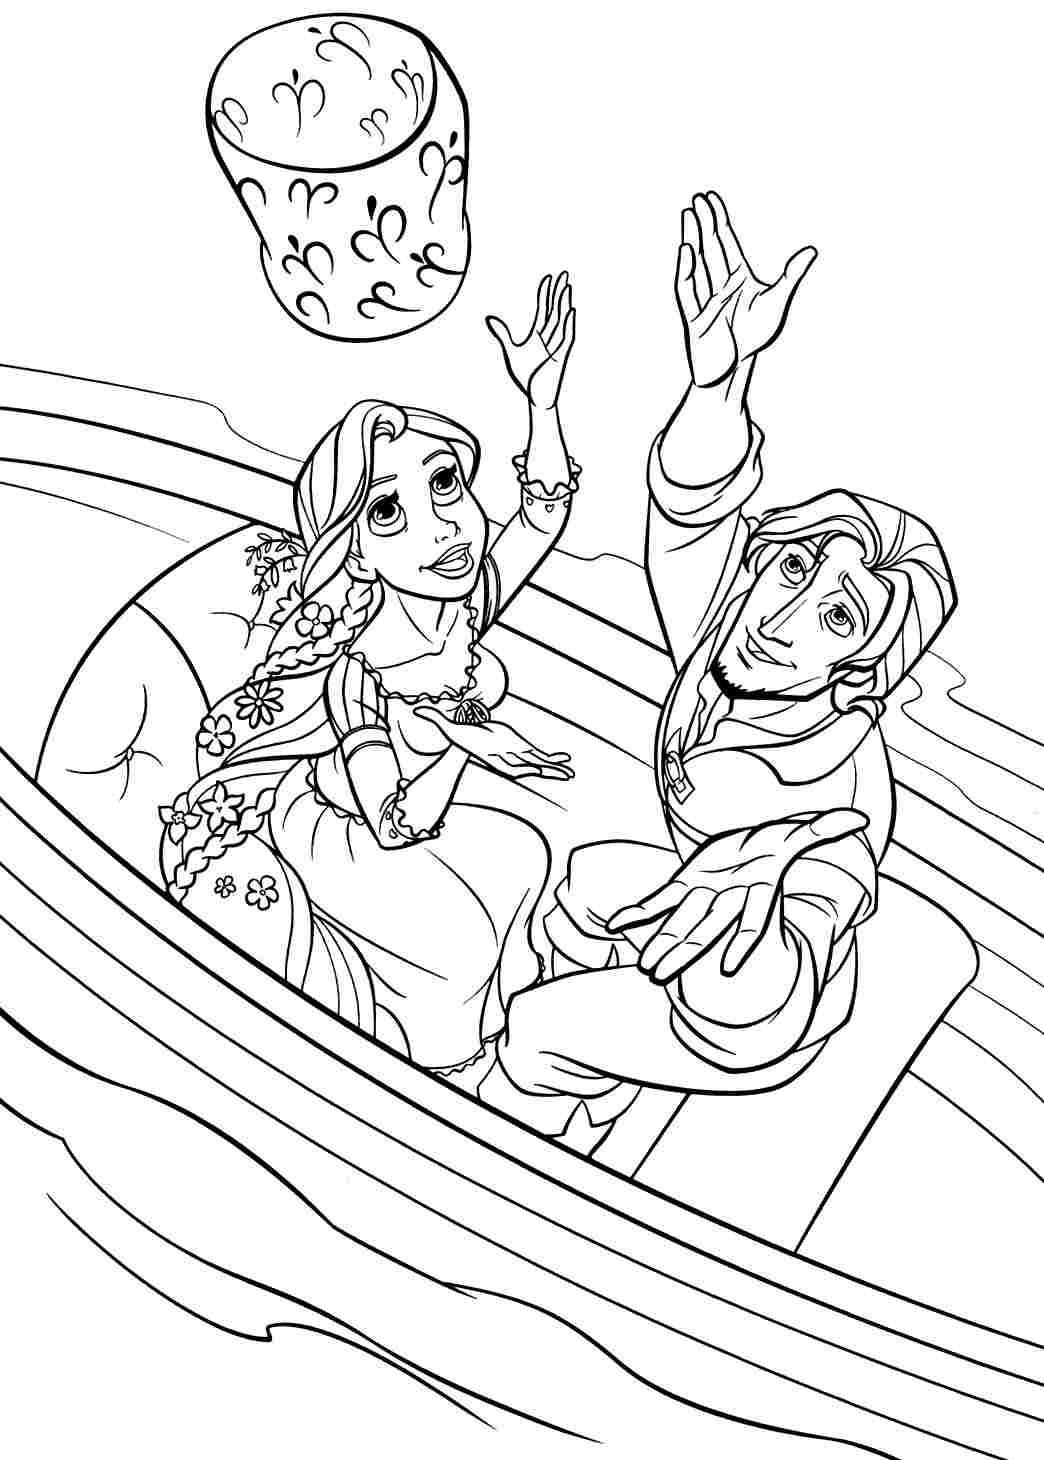 10 Tangled Coloring Book Tangled Coloring Page Pdf Tangled Coloring Pages Tangled Co Tangled Coloring Pages Princess Coloring Pages Rapunzel Coloring Pages